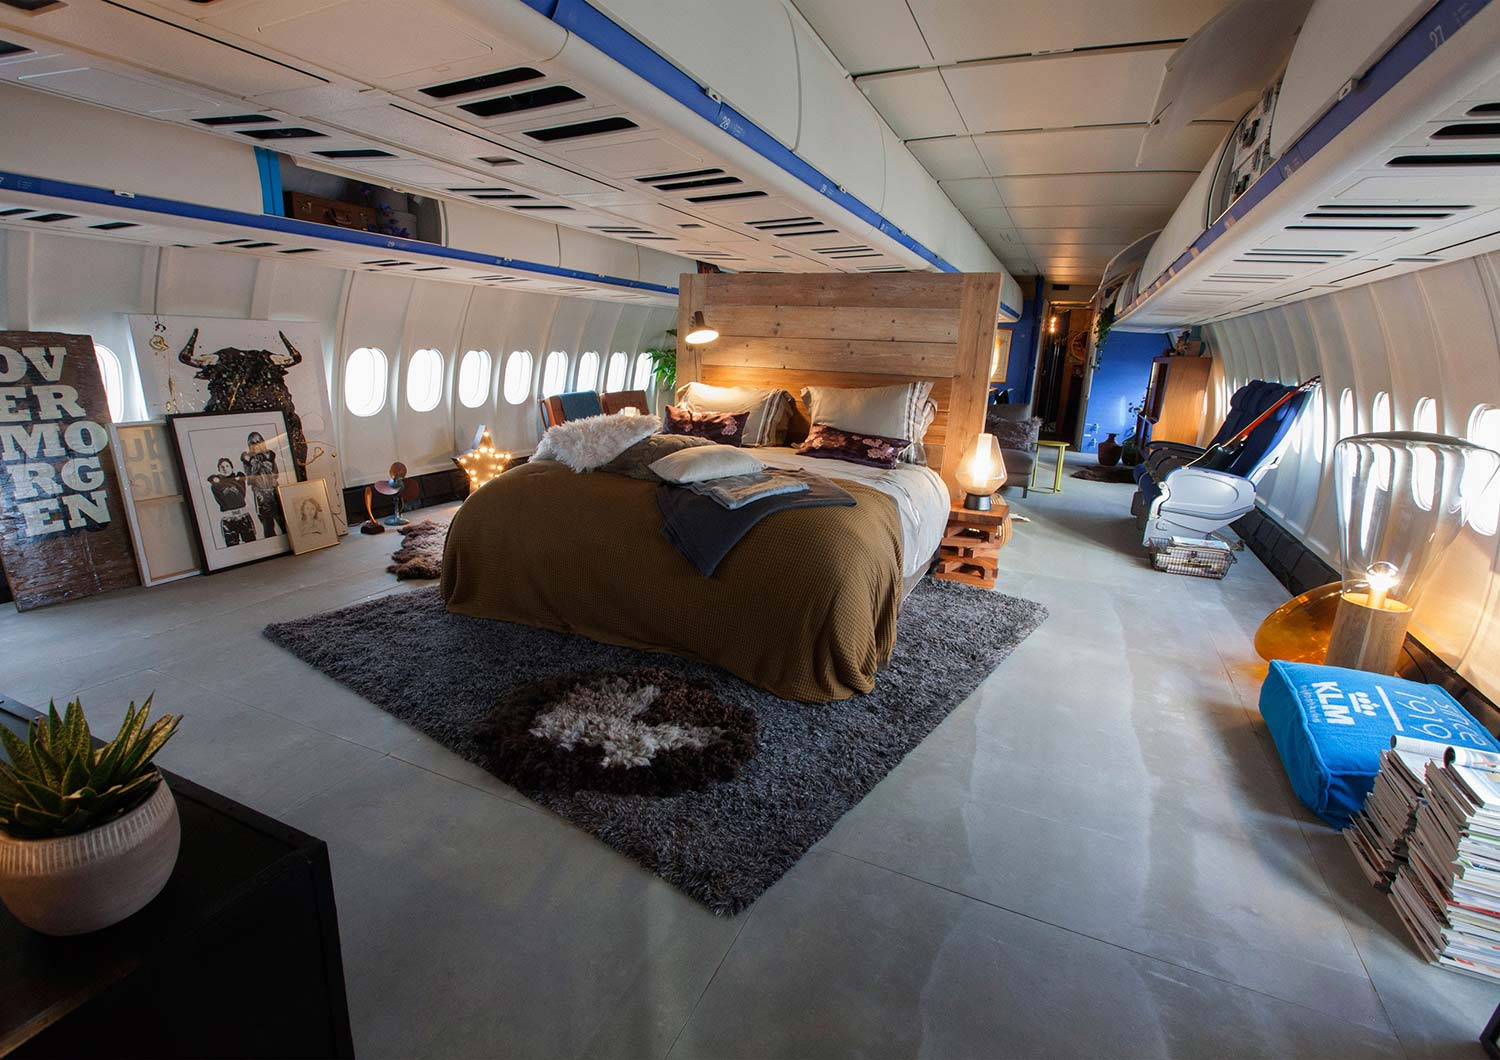 Airbnb Nl Amsterdam Tank Interior For Klm And Airbnb Collaboration